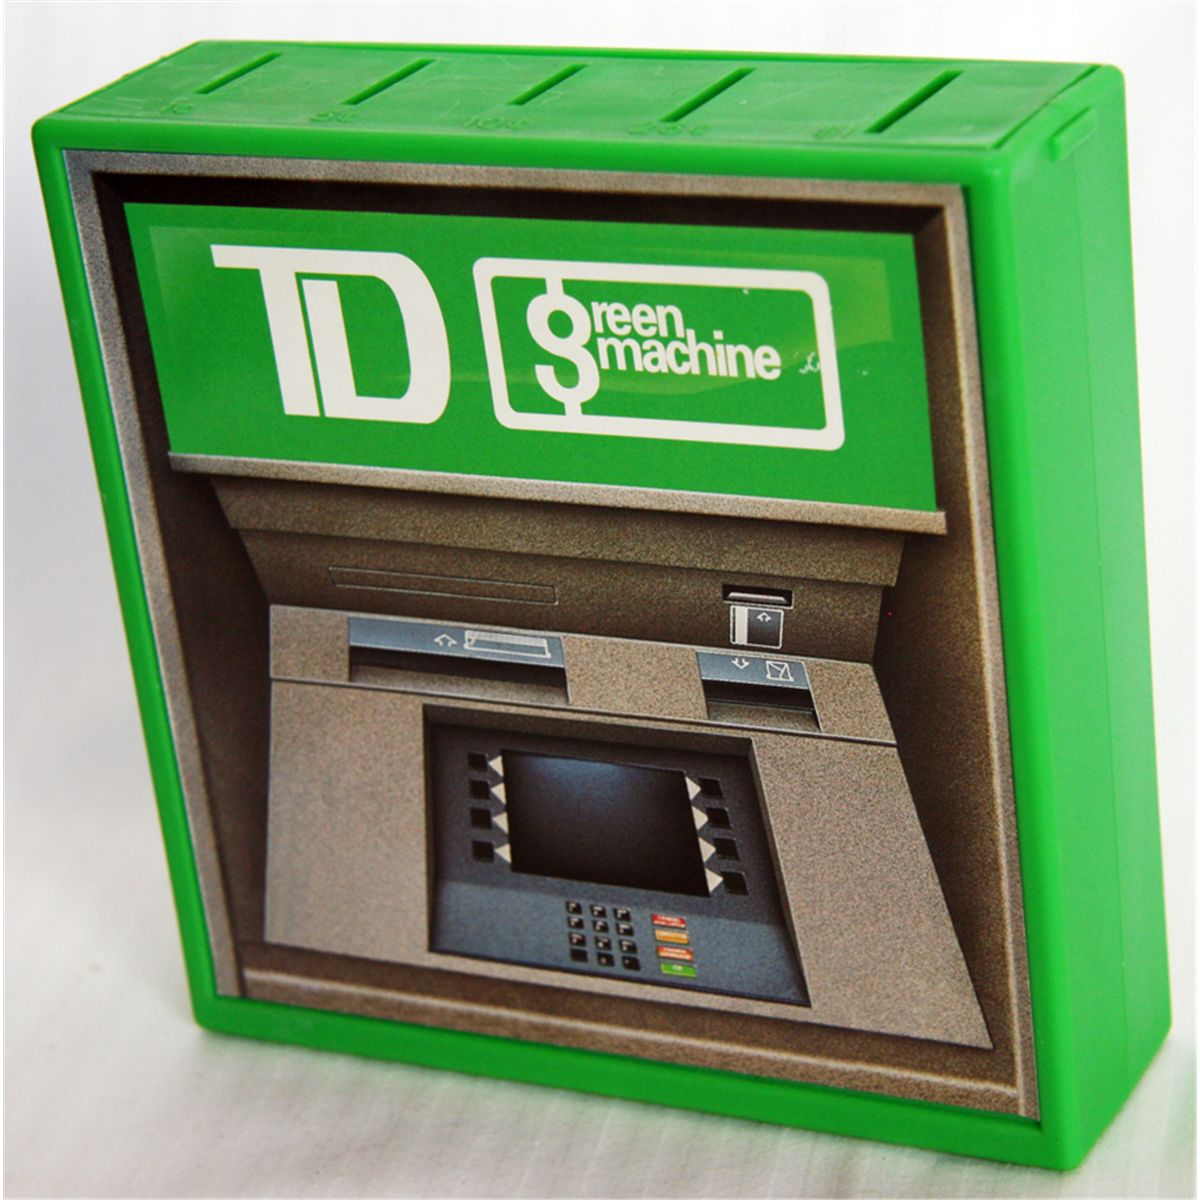 td bank coin machine fee